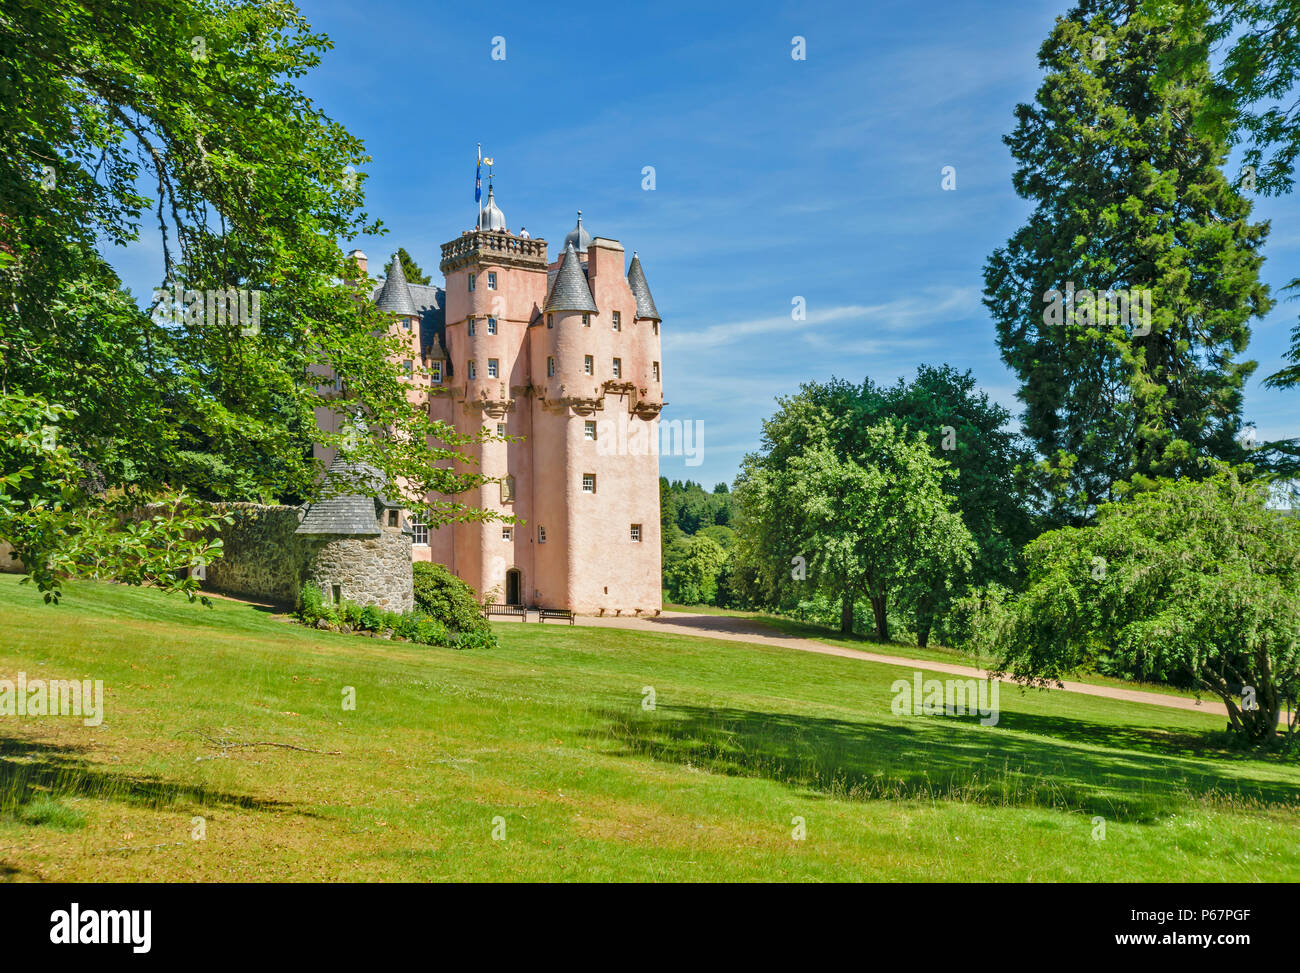 CRAIGIEVAR CASTLE ABERDEENSHIRE SCOTLAND MAIN ENTRANCE PEOPLE AT THE TOP OF THE TOWER AND SUMMER TREES - Stock Image